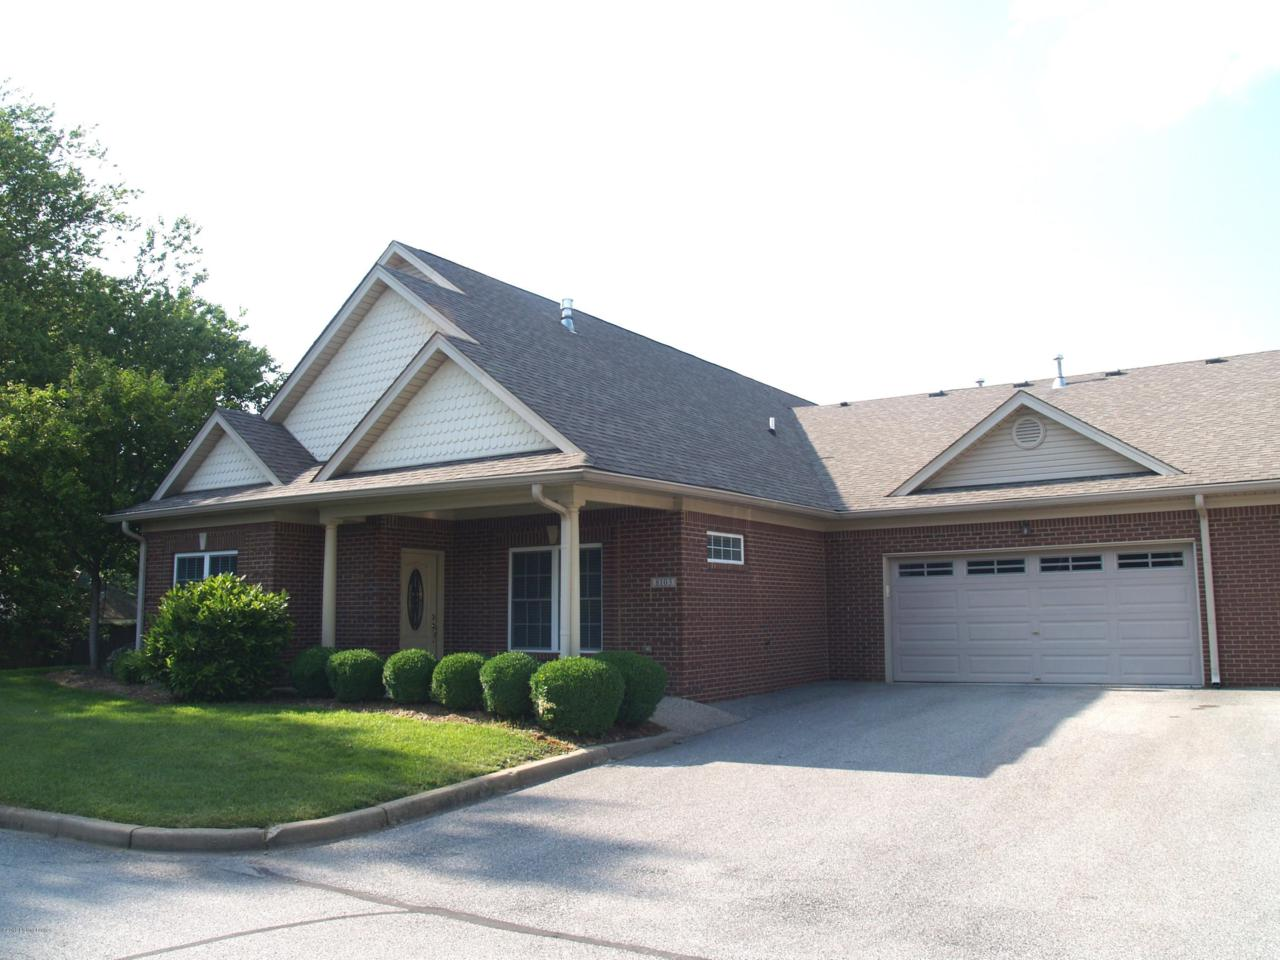 8103 Spring Orchard Ct - Photo 1